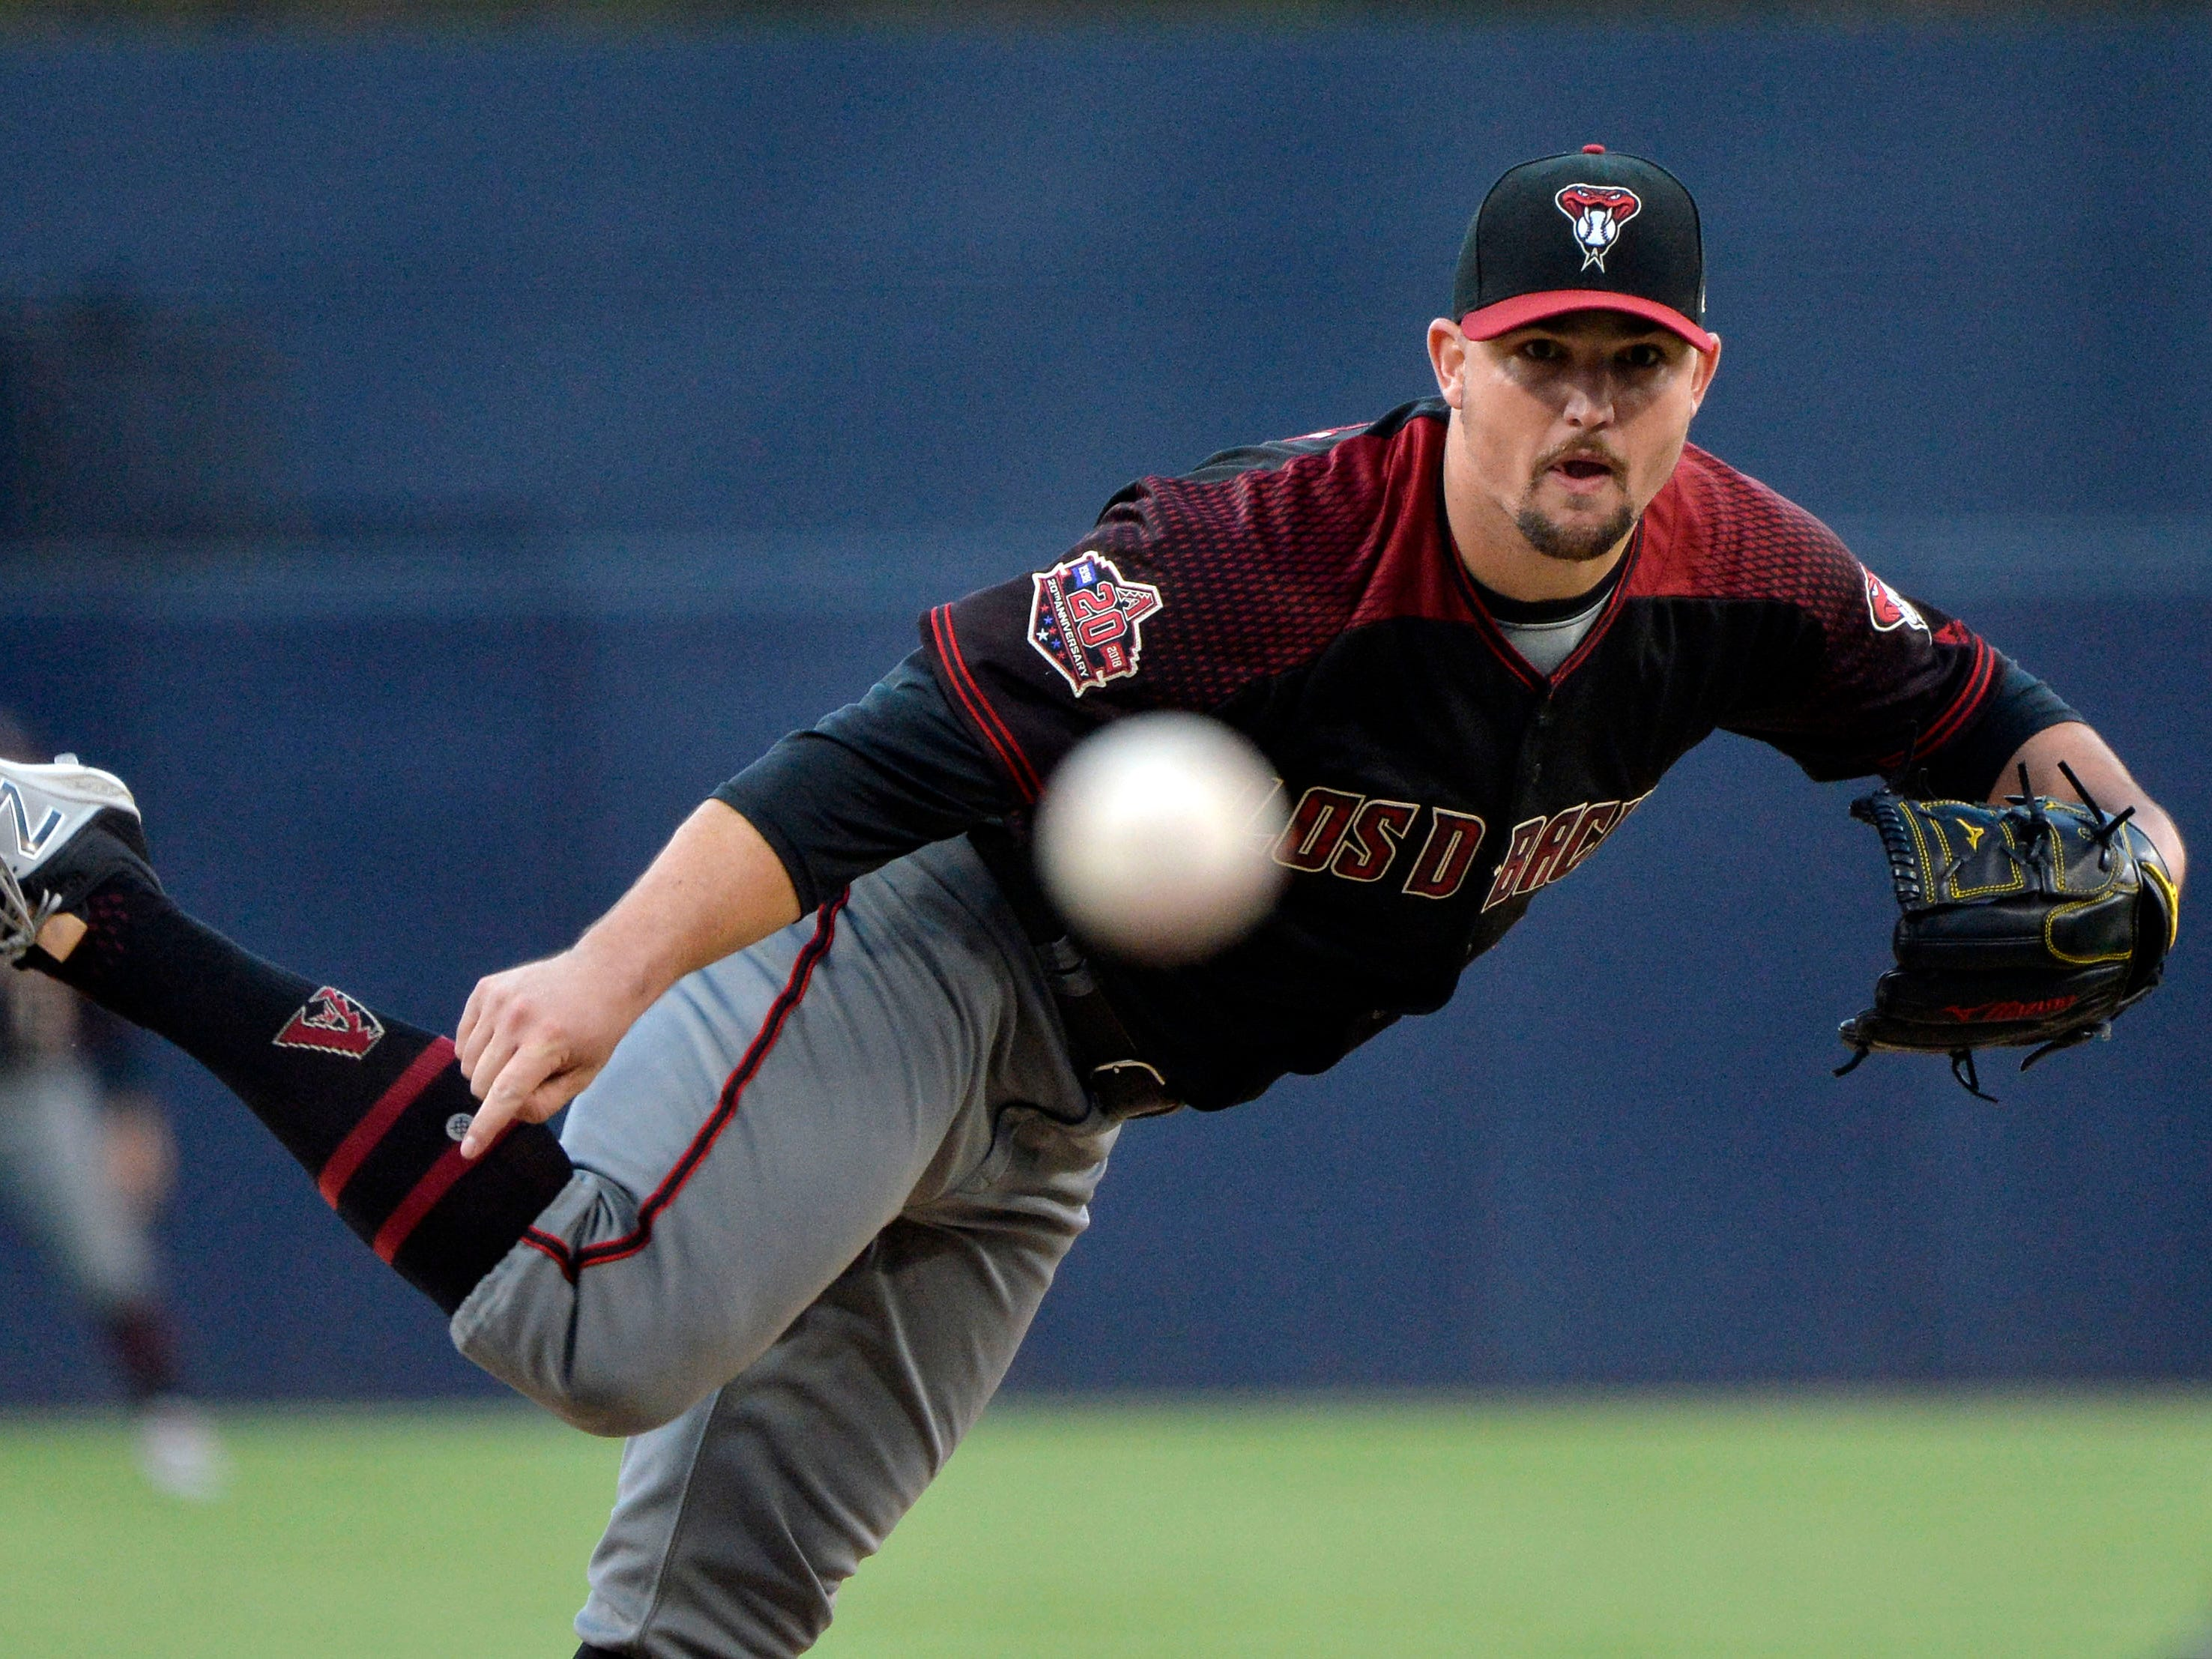 Sep 29, 2018; San Diego, CA, USA; Arizona Diamondbacks starting pitcher Zack Godley (52) pitches during the first inning against the San Diego Padres at Petco Park. Mandatory Credit: Jake Roth-USA TODAY Sports